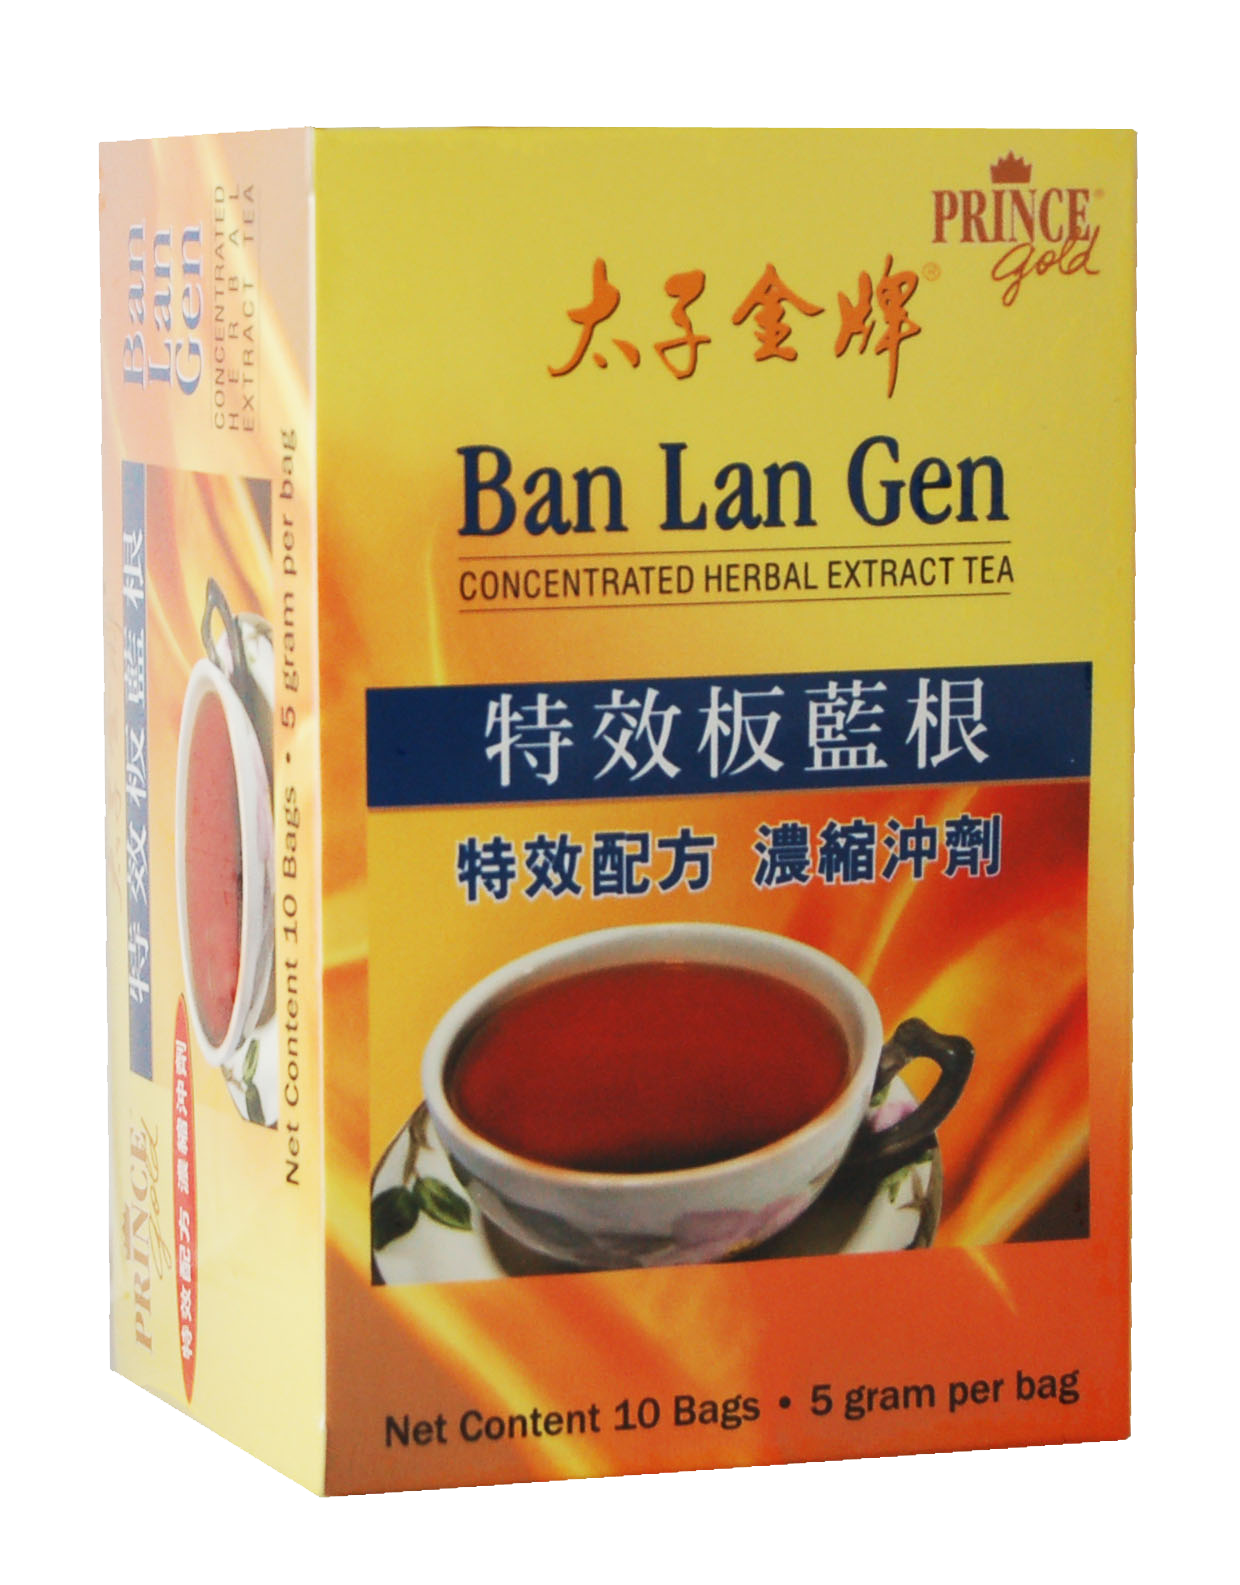 Ban Lan Gen Concentrated Herbal Extract Tea